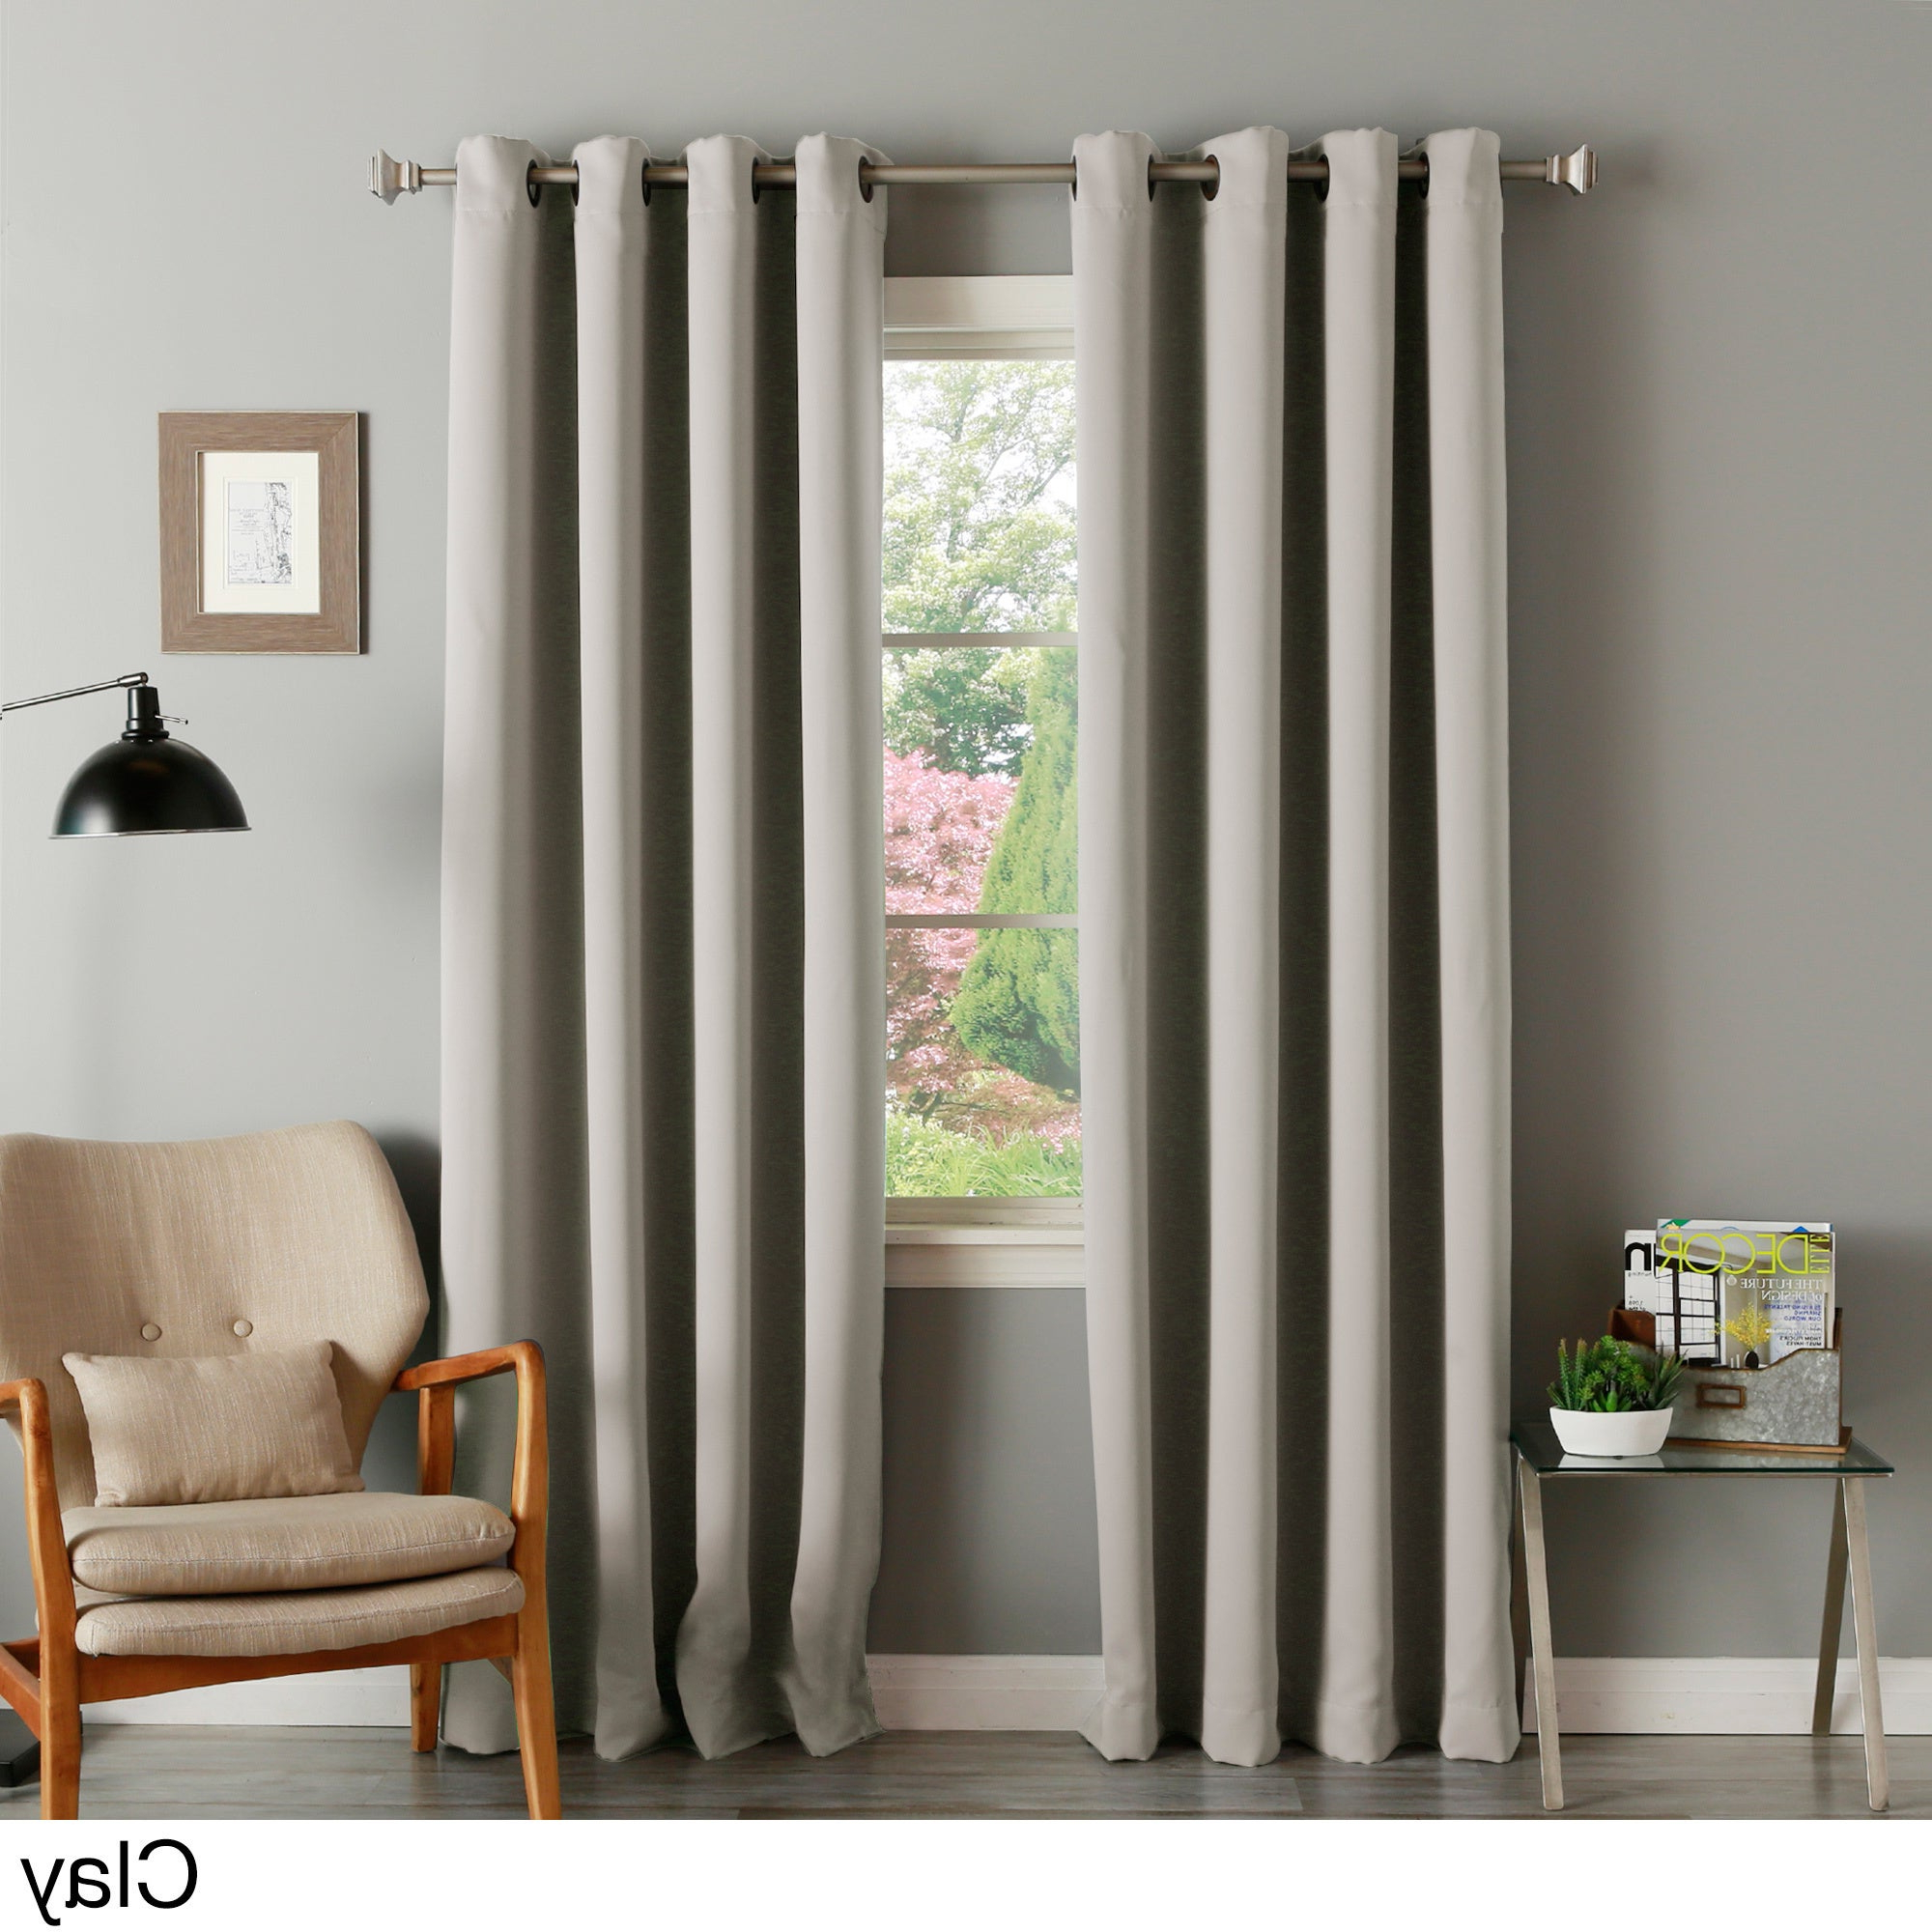 Famous Aurora Home Thermal Insulated Blackout Grommet Top Curtain Panel Pair Intended For Thermal Insulated Blackout Grommet Top Curtain Panel Pairs (Gallery 1 of 20)